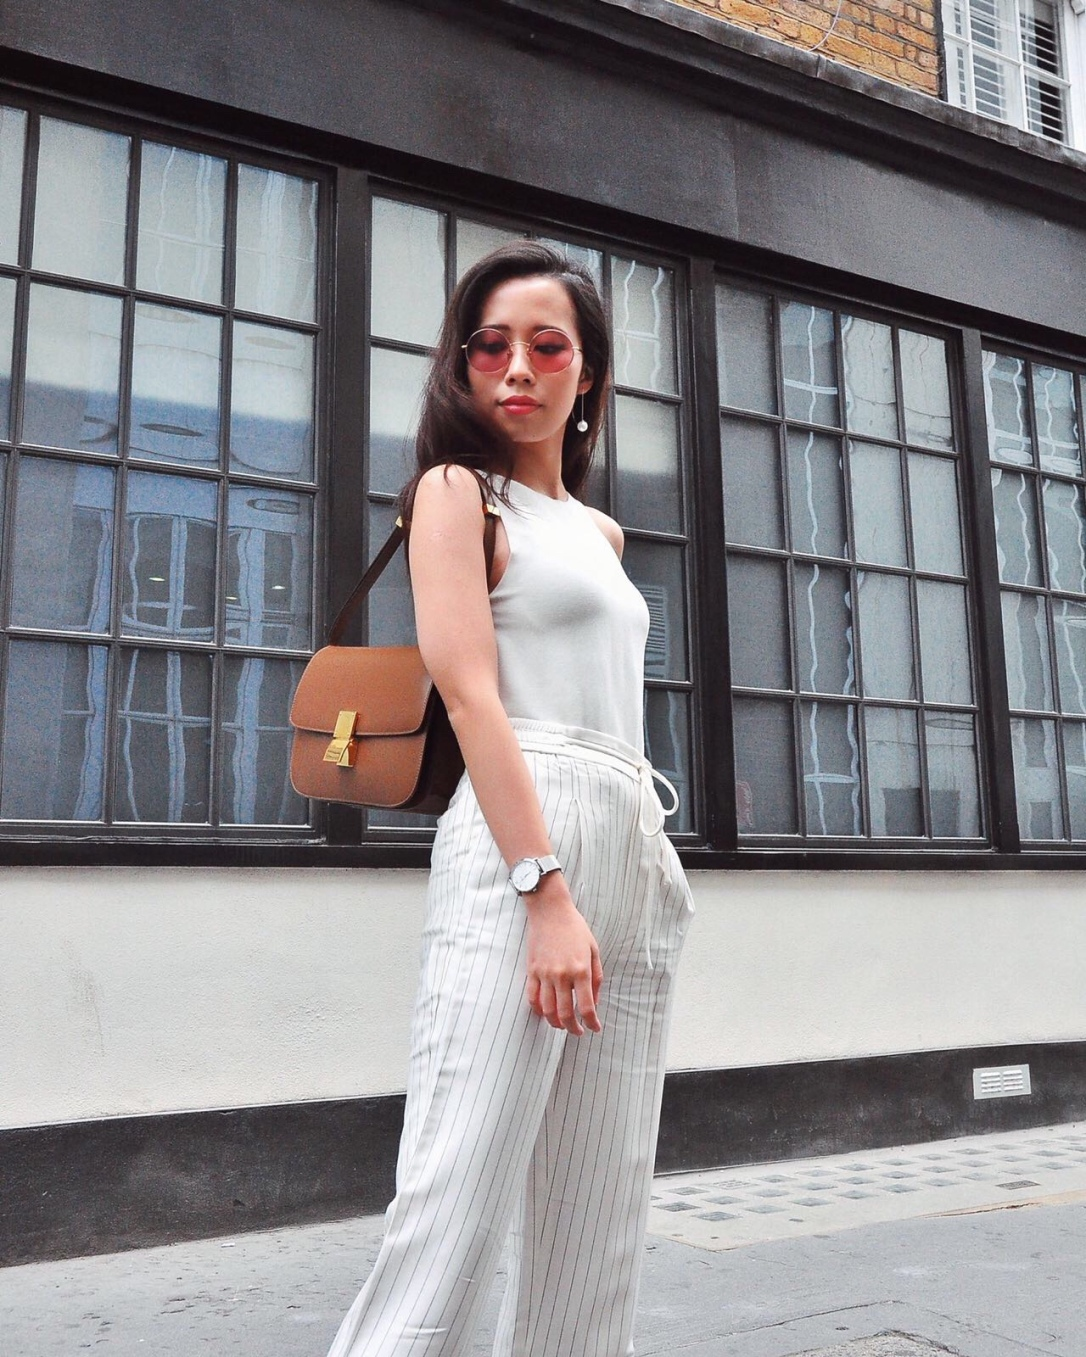 Wearing celine box bag from celine, white trousers, striped trousers, white sleeveless knit top, summer knit, brown celine bag, drawstring trousers, cluse watch, pearl earrings, pink rose tinted round sunglasses from jimmy fairly sunglasses